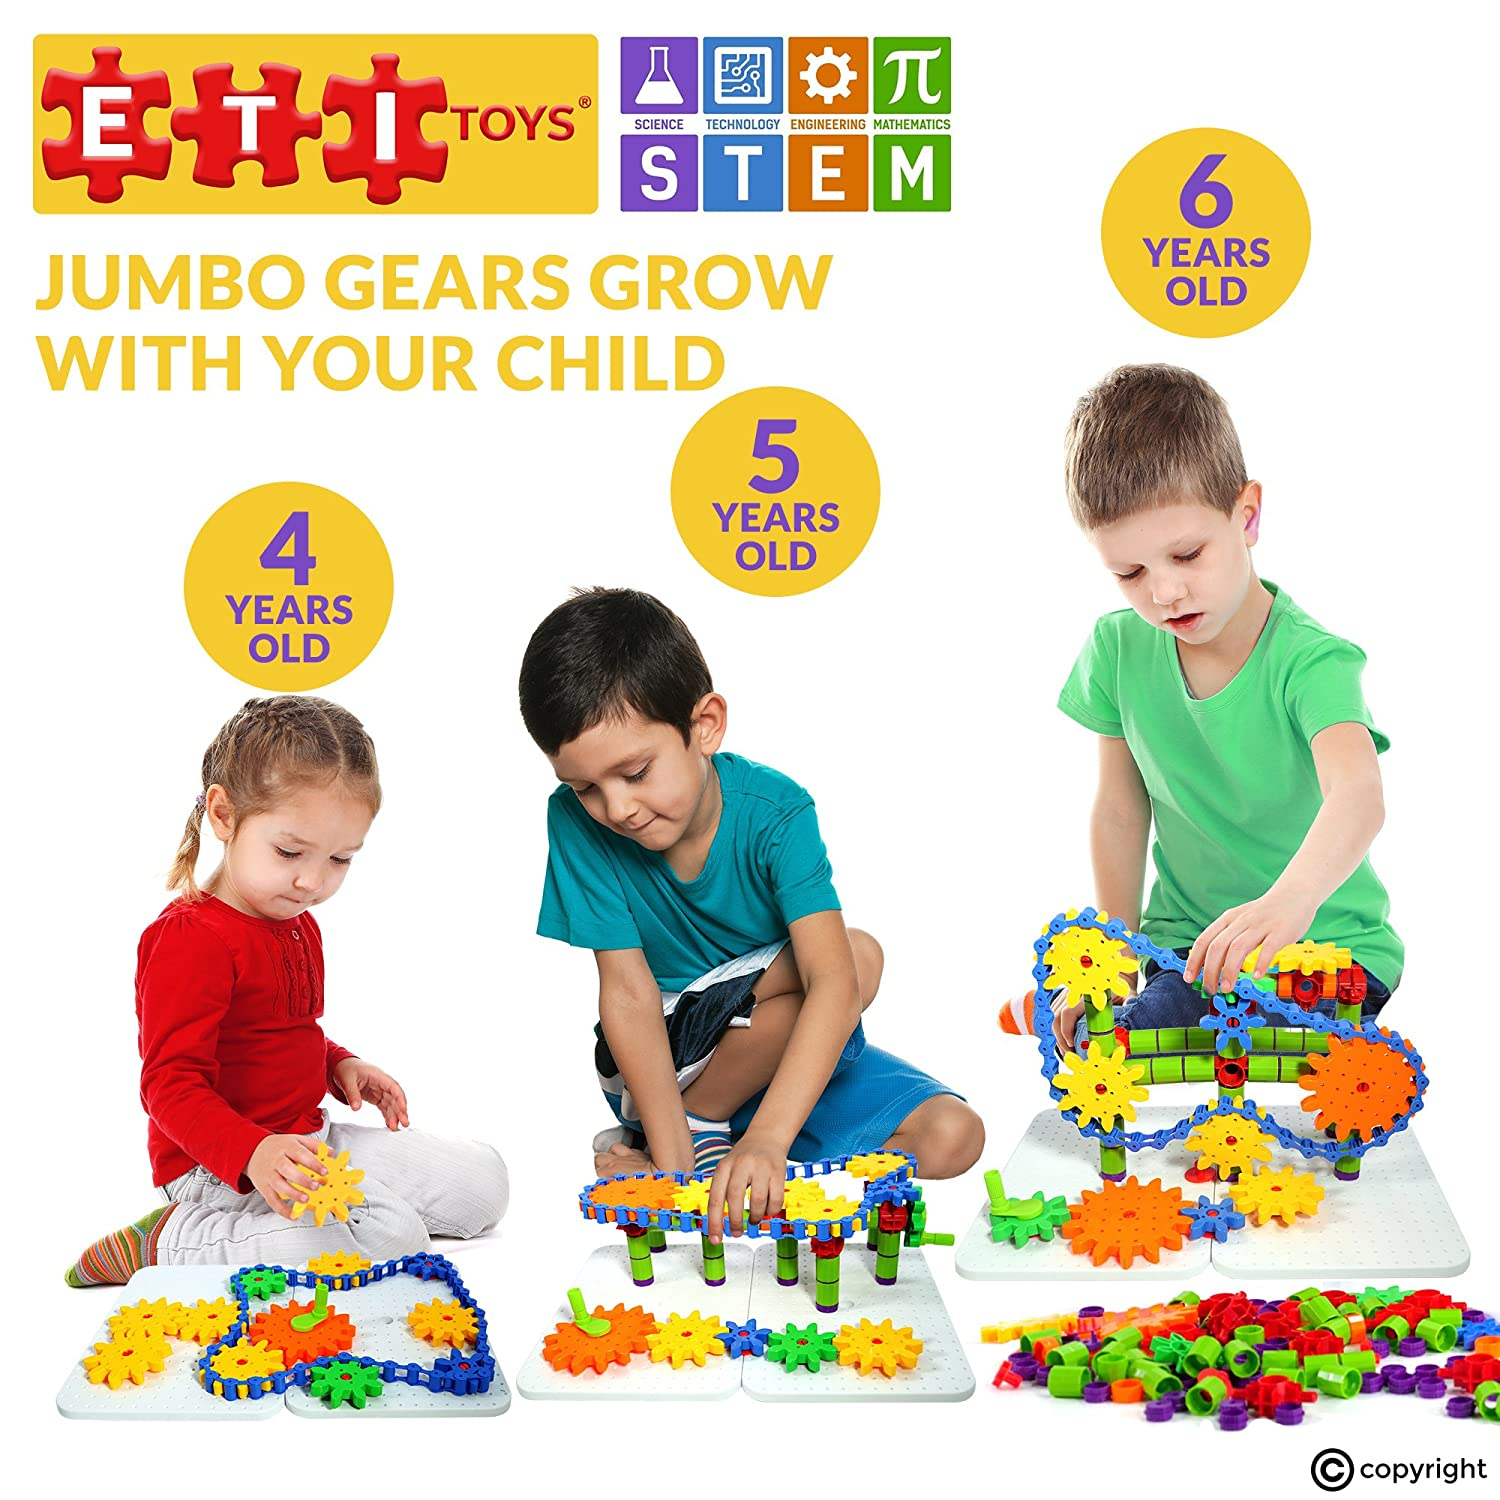 Amazon ETI Toys Jumbo Gears Kit for Boys and Girls